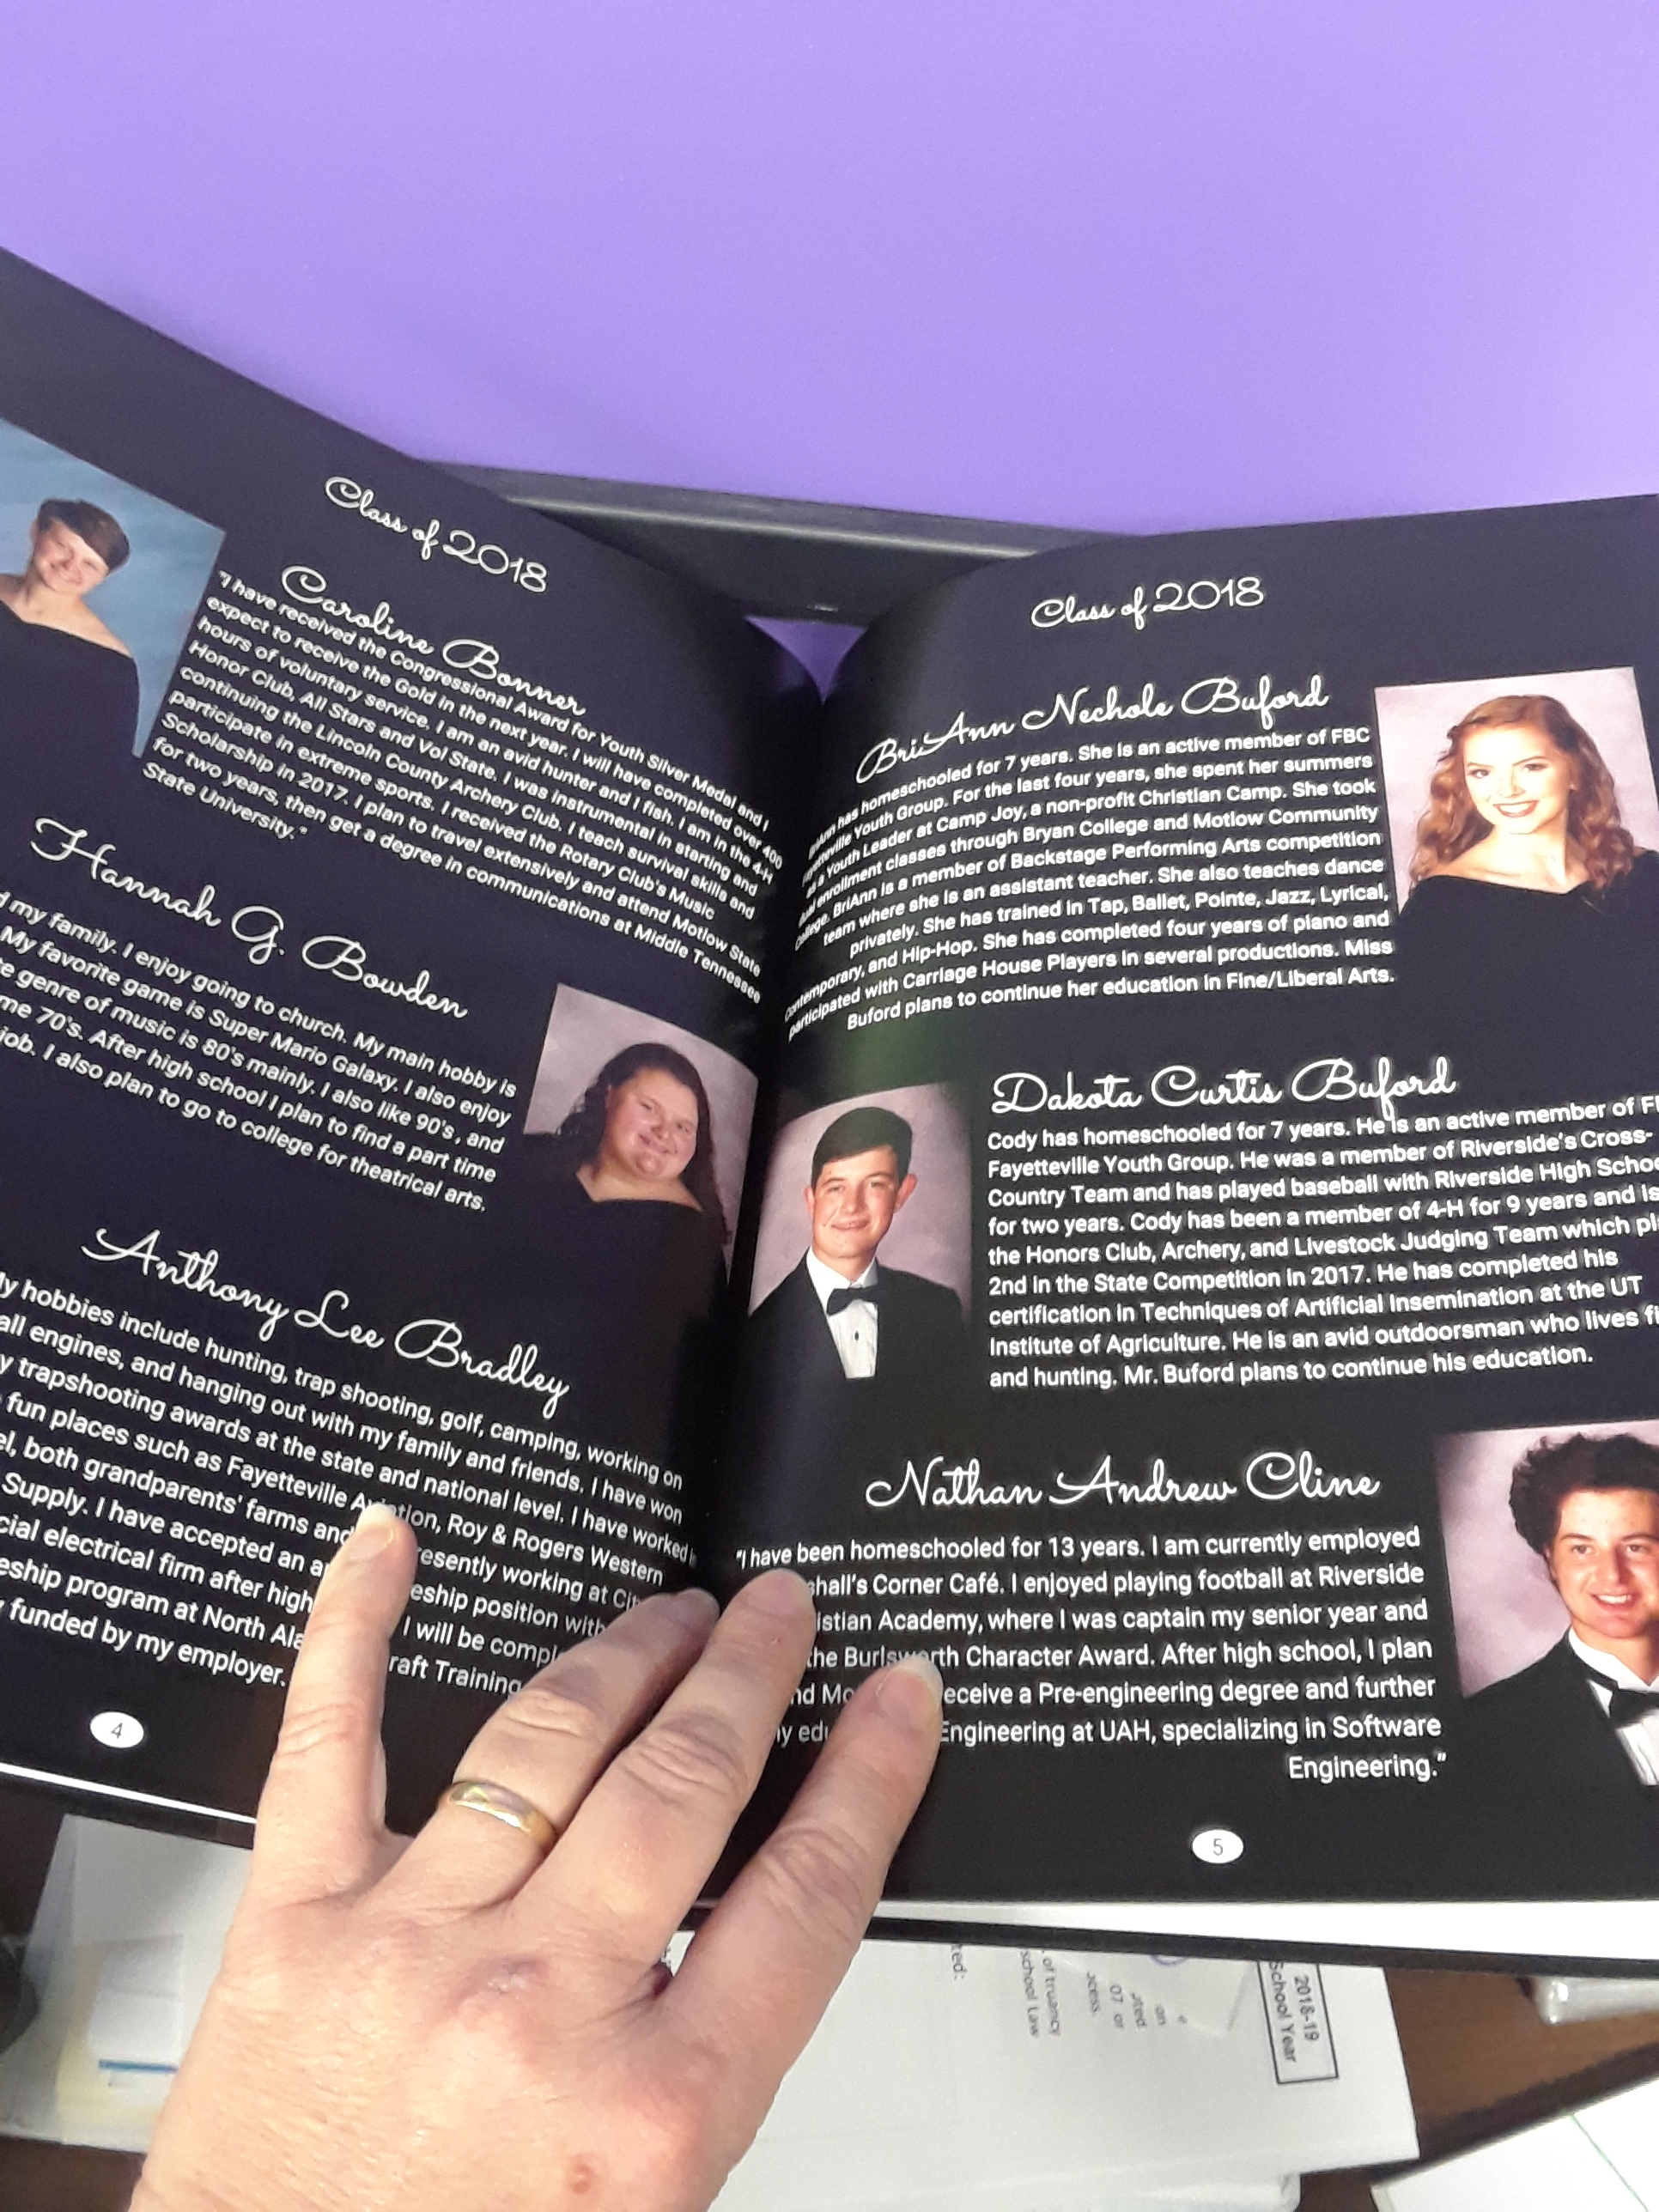 Class of 2018 is featured with portraits and mini-bios.